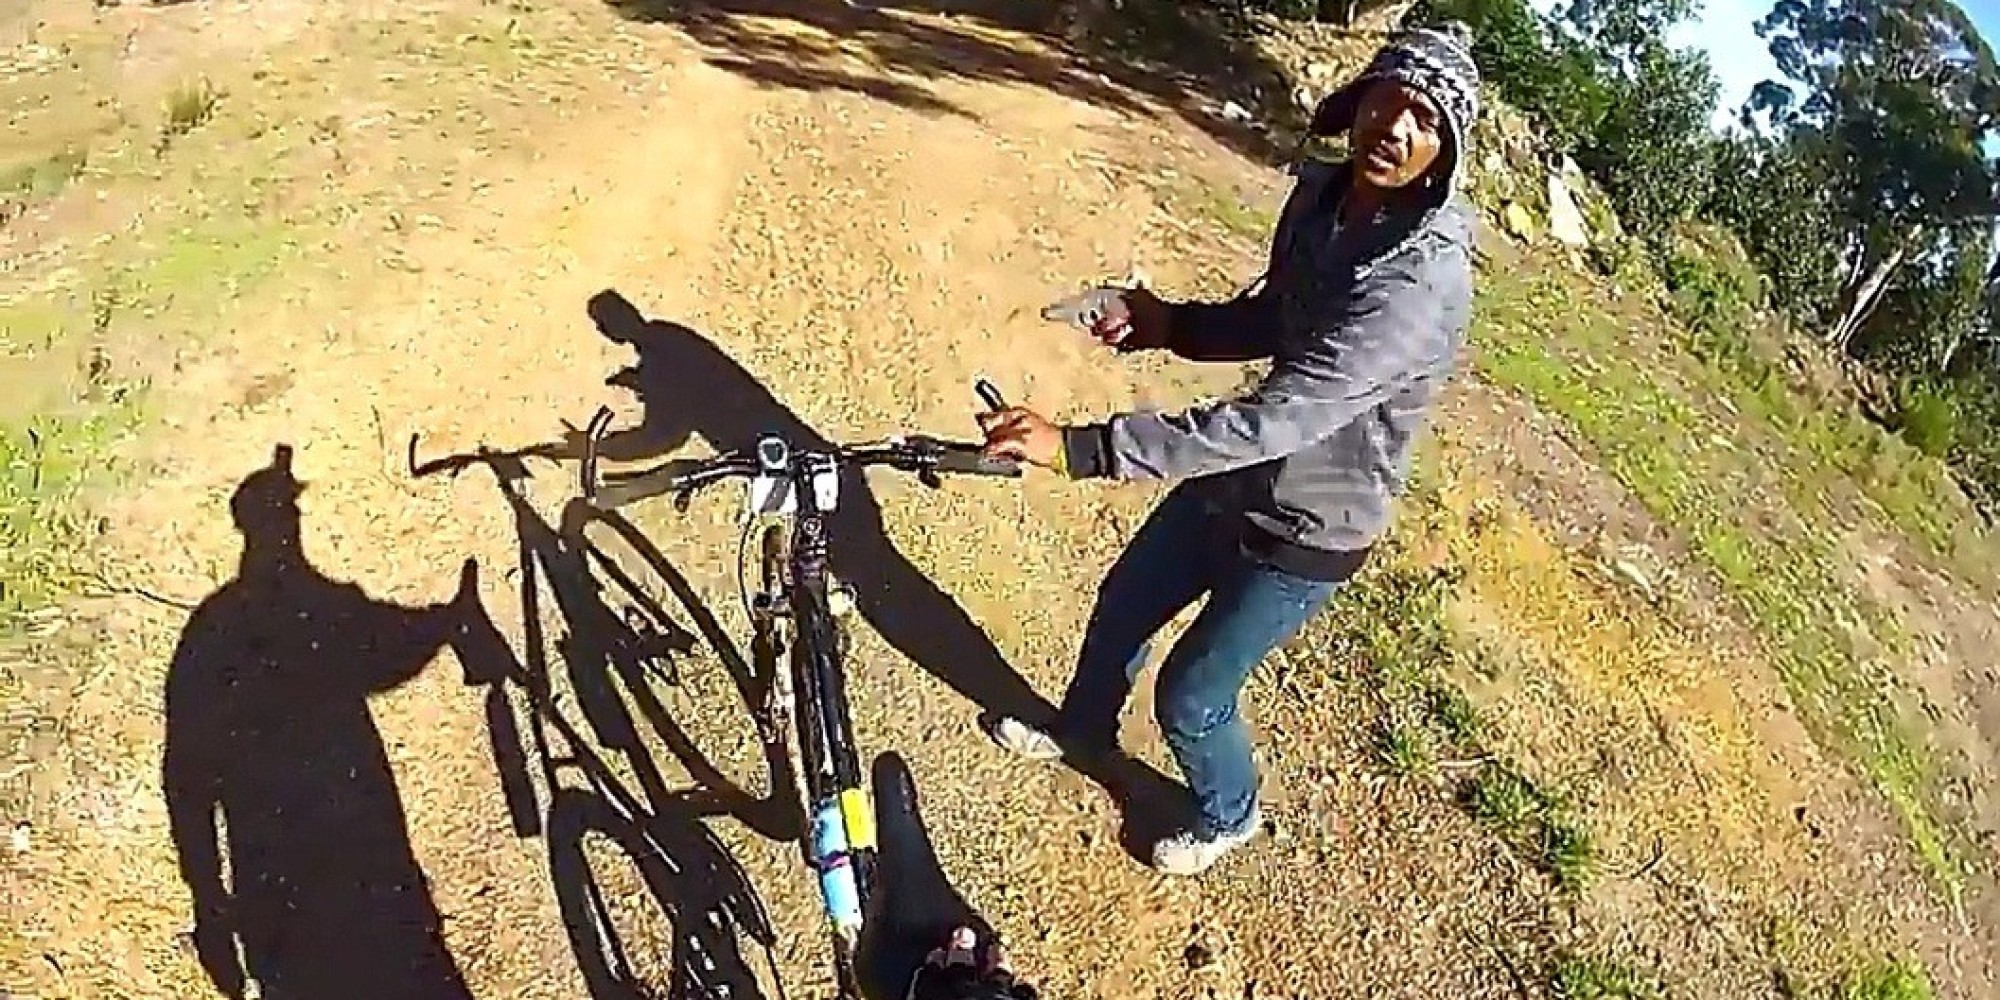 12 bicyclist s gopro captures frightening armed robbery watch gopro ...